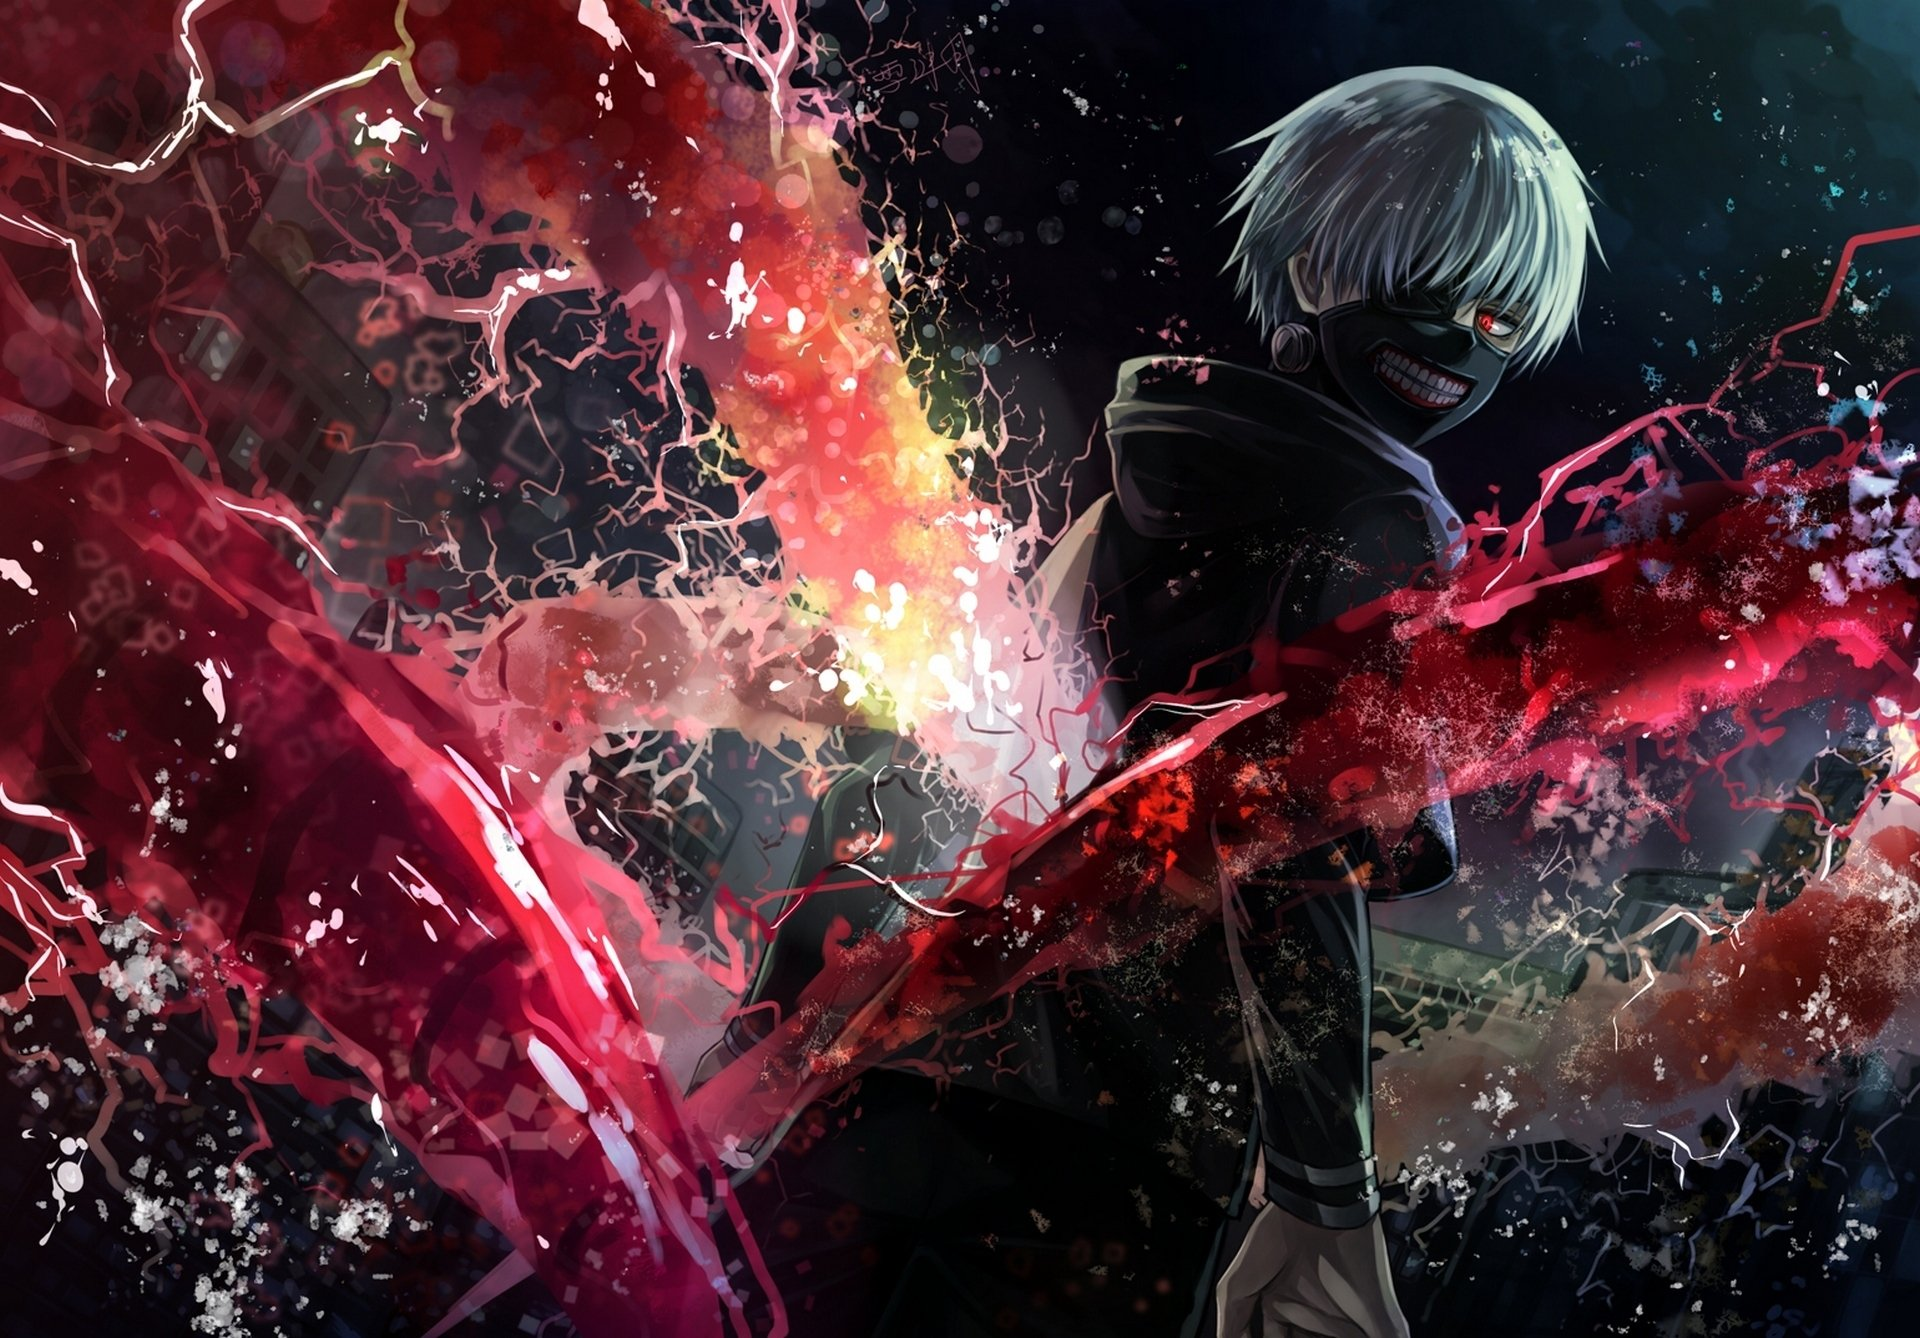 HD Wallpaper | Background Image ID:587597. 1920x1338 Anime Tokyo Ghoul